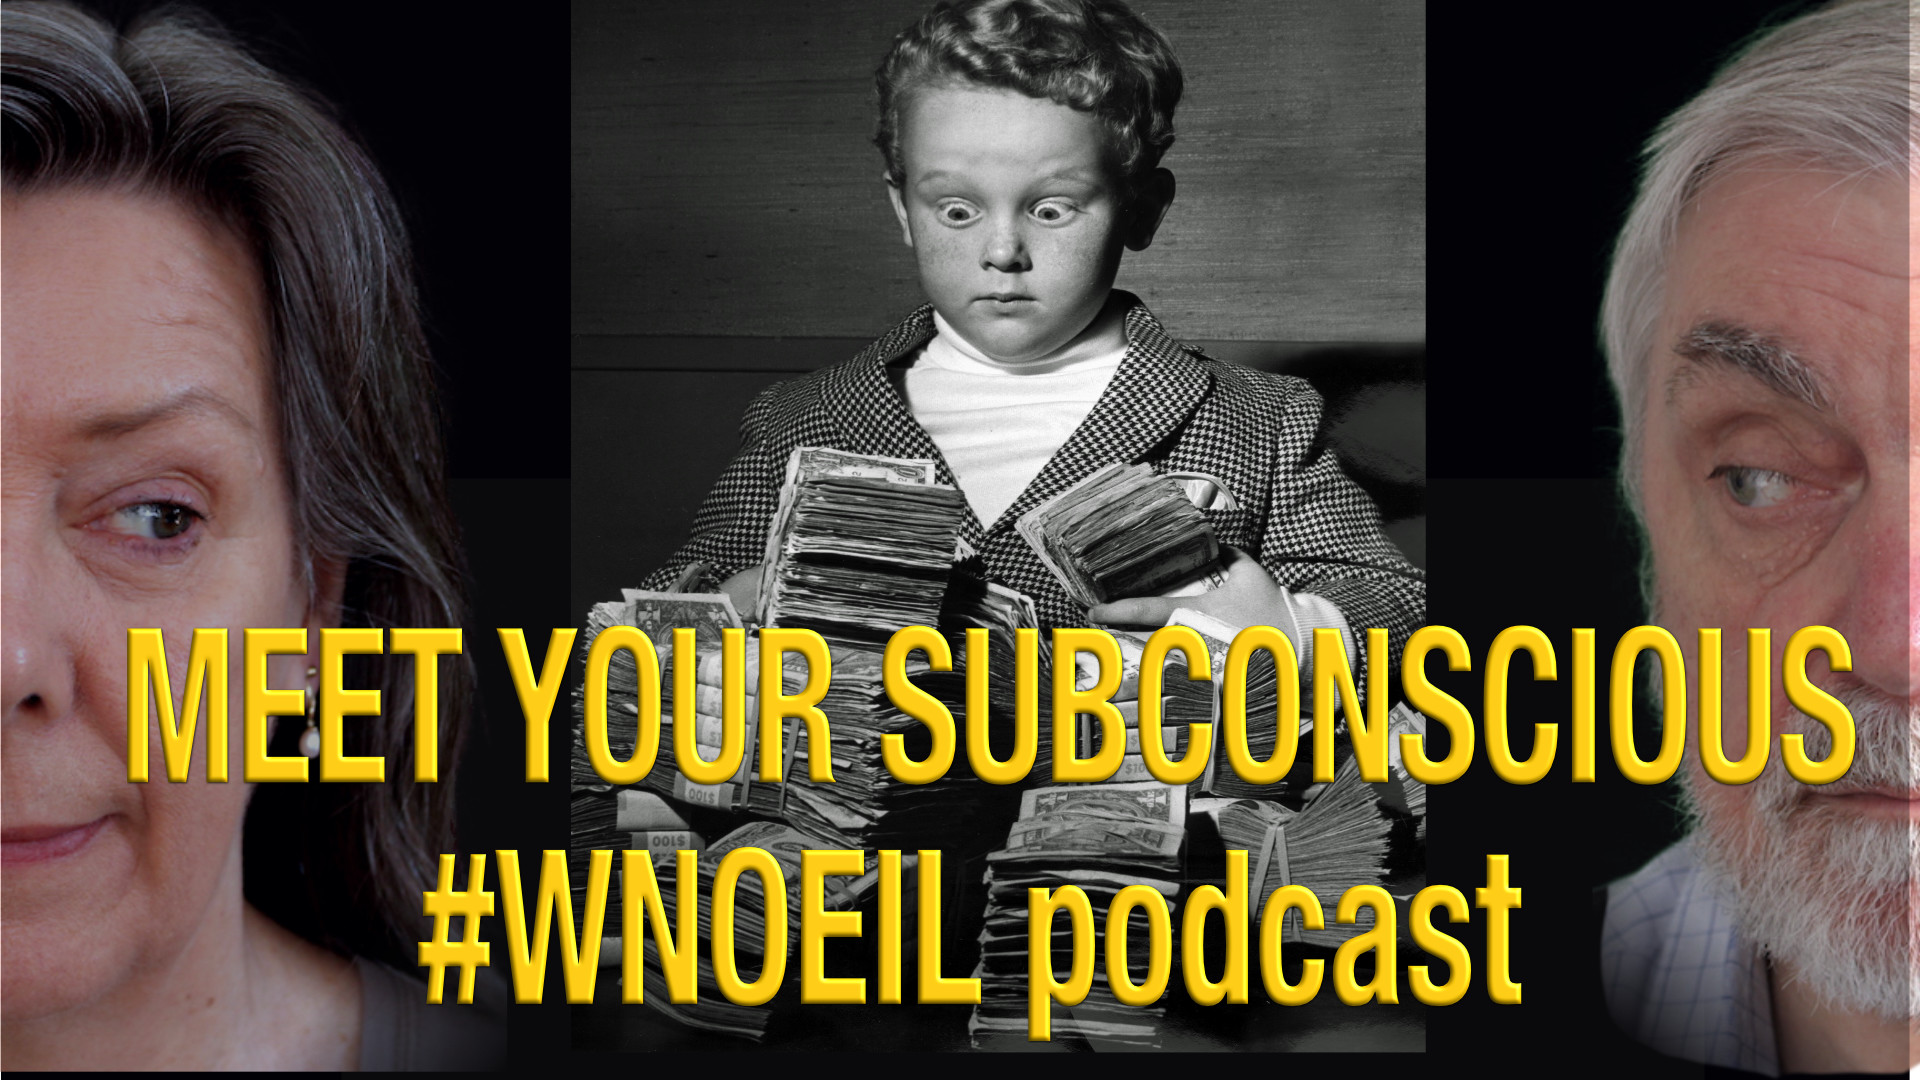 Meet your subconscious Podcast with Jonathan Chase the hypnotist and Jane Bregazzi #wnoeil #subskills #hypnoarts